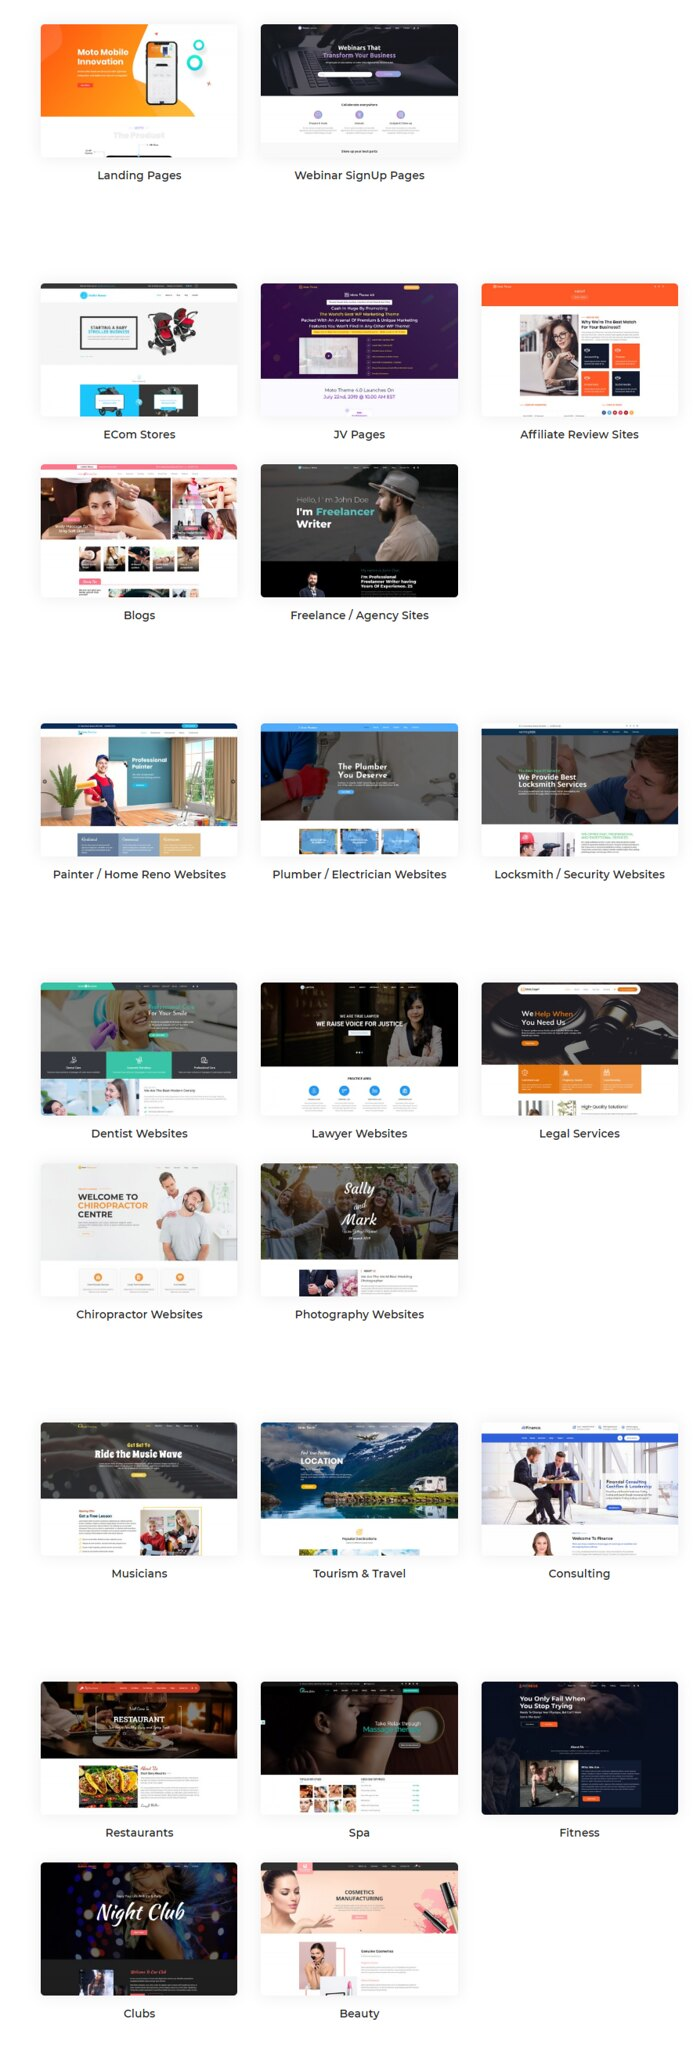 MarketPlace BUNDLE Review - ALL INCLUSIVE Web Marketing Tools 6